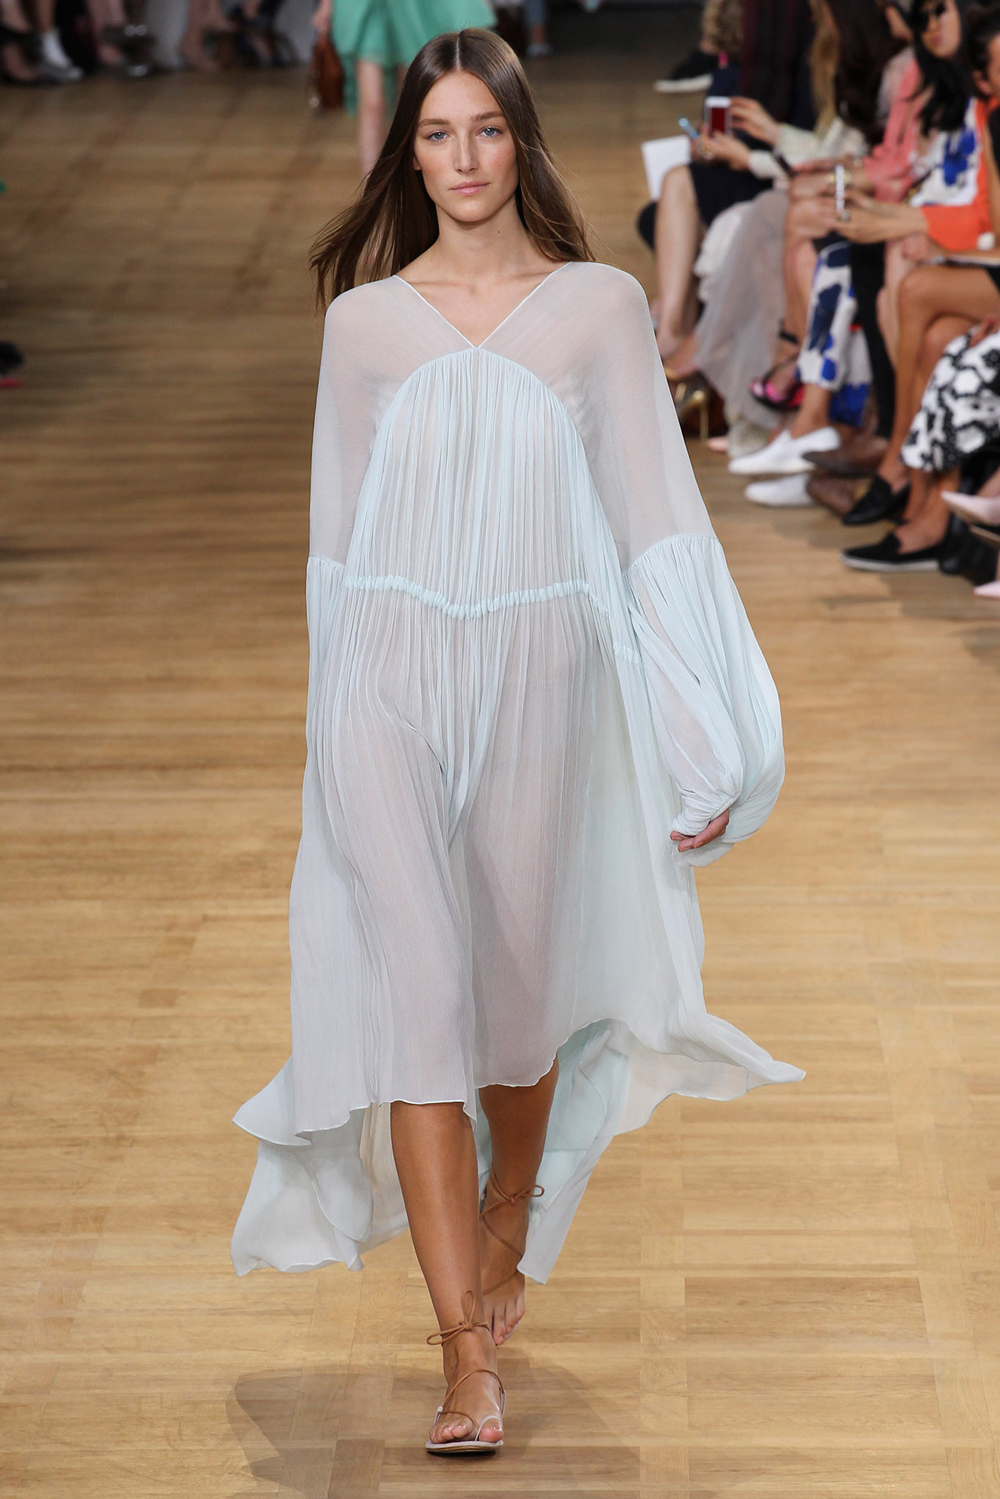 Pantone Colour Report Spring 2015 trends / aquamarine / how to wear aquamarine / outfit ideas / fashion collections S/S 2015 / Chloe Spring 2015 / via fashioned by love british fashion blog